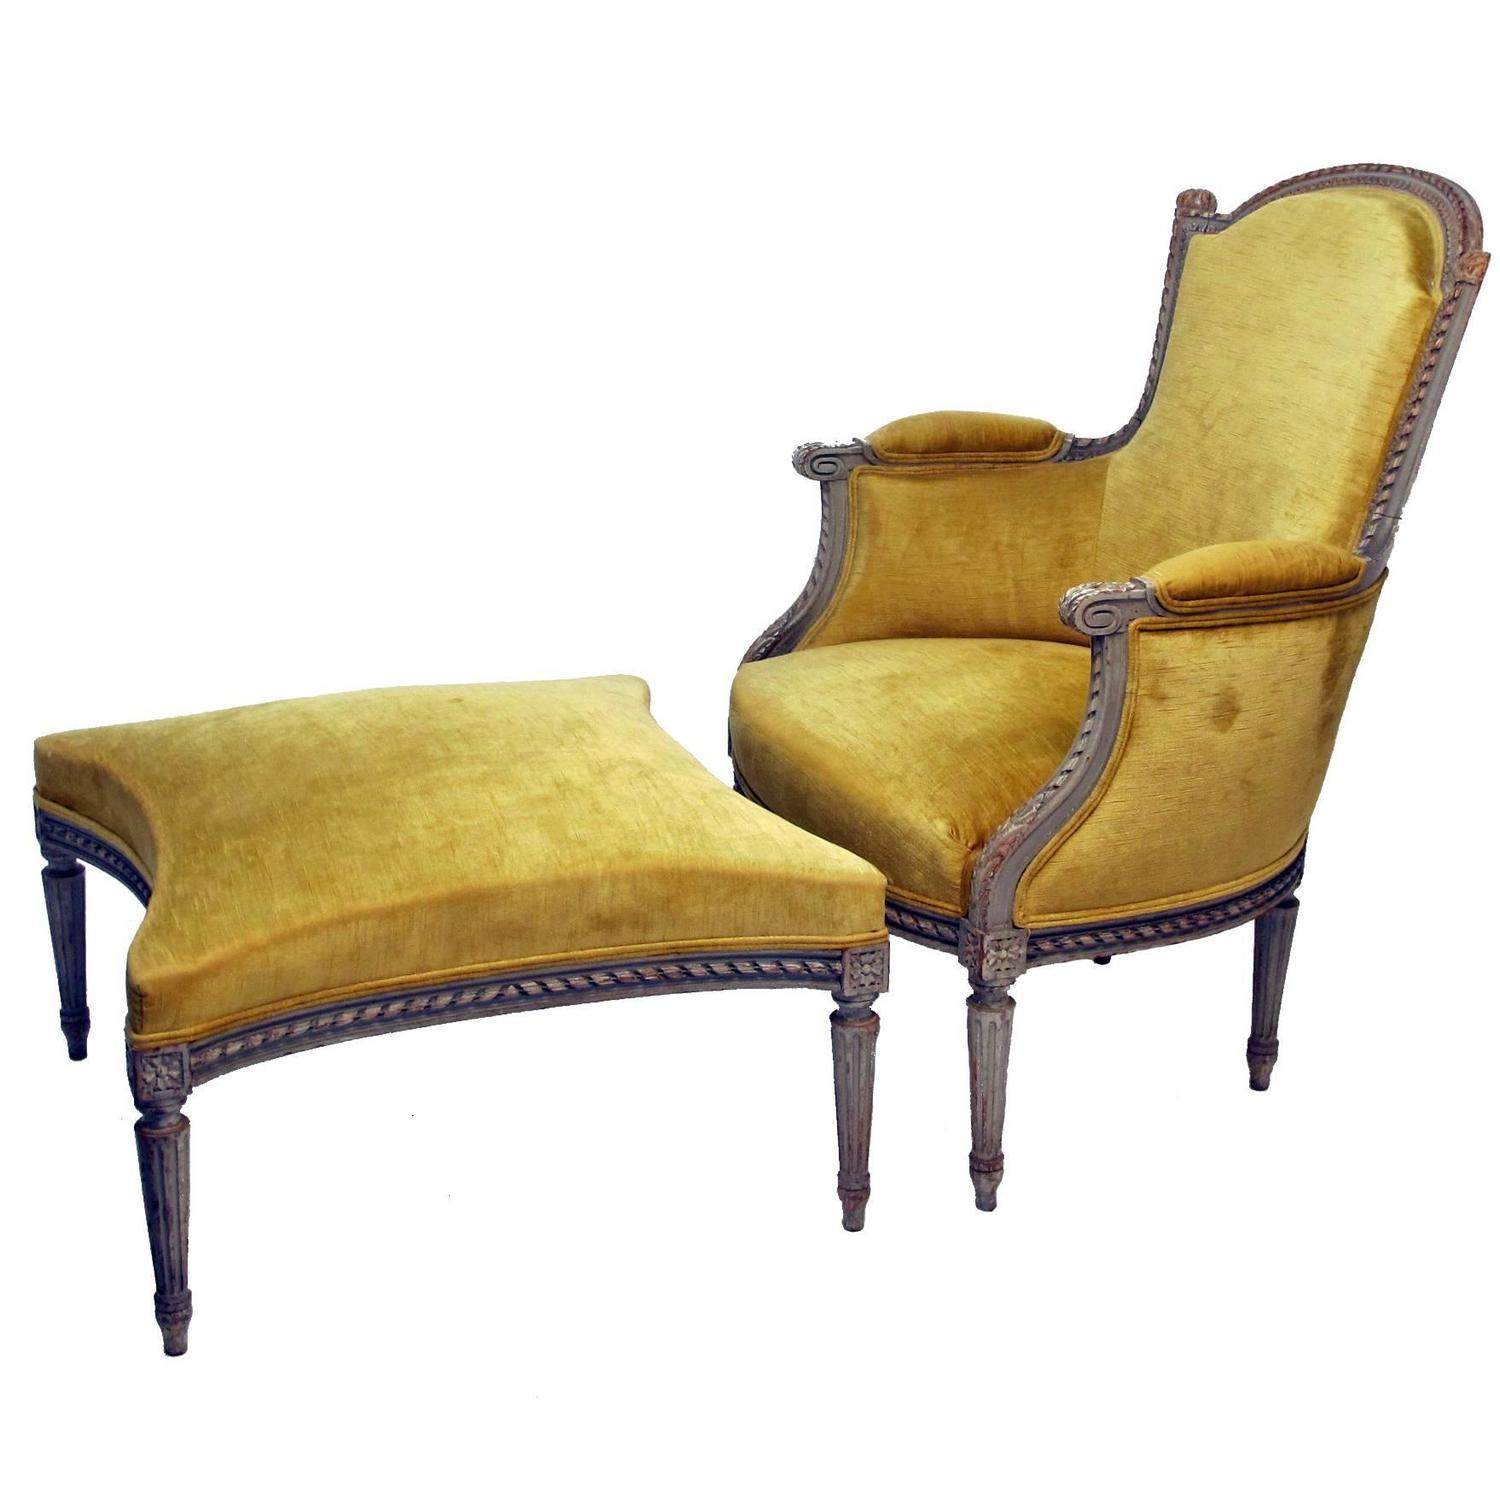 French Bergere Chair with Ottoman at 1stdibs